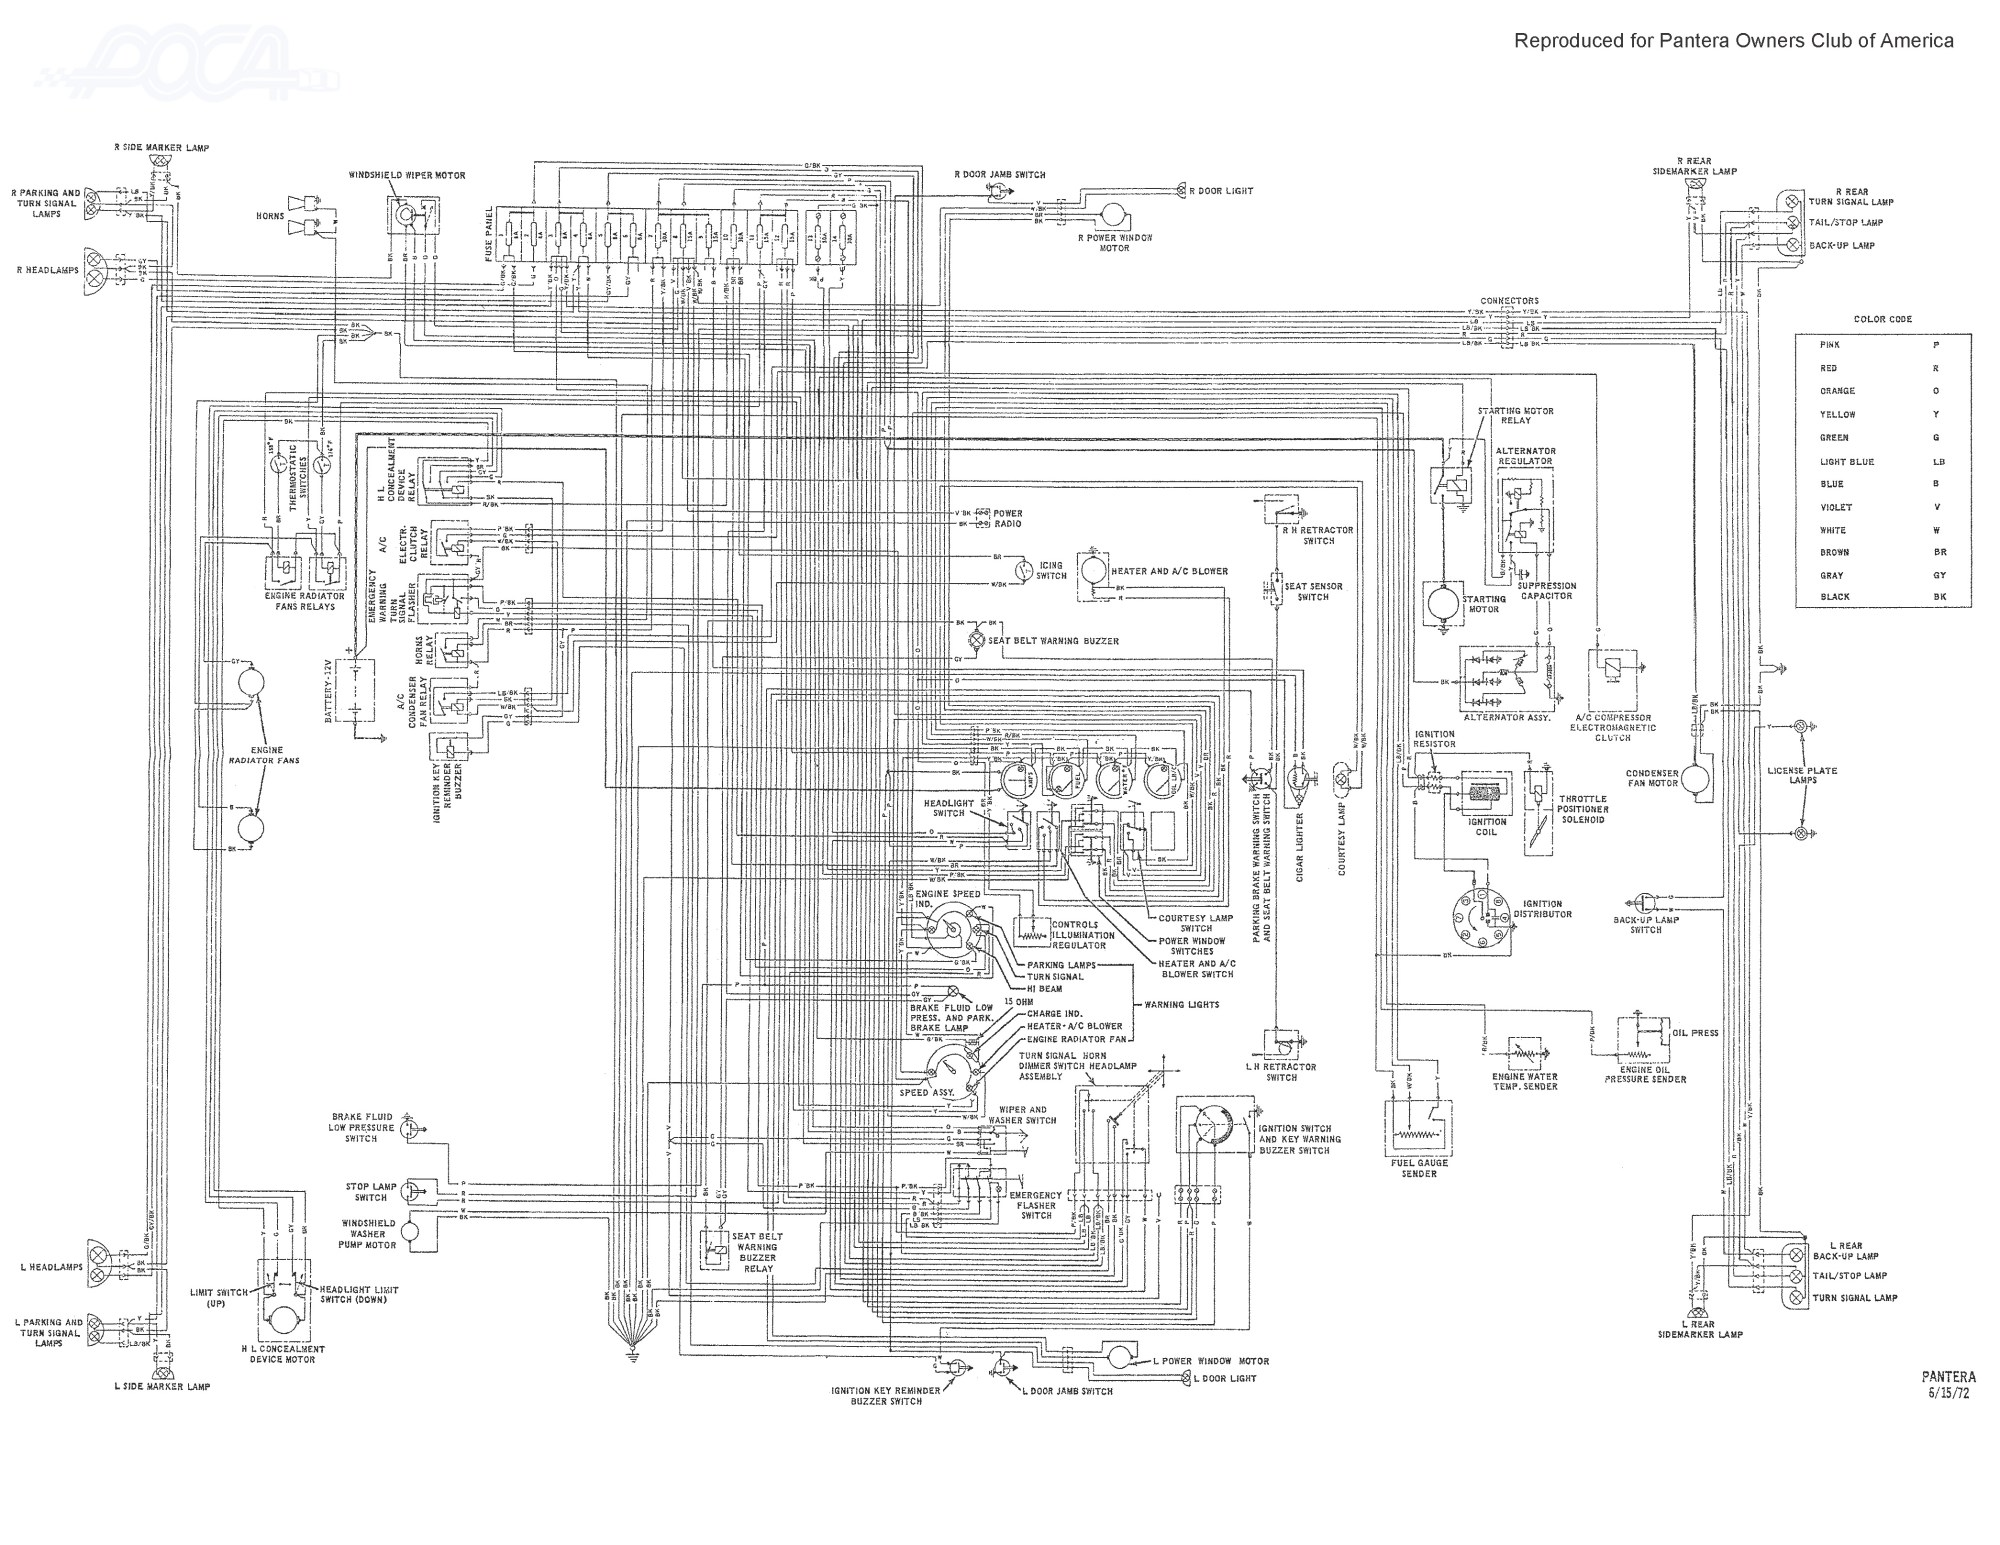 hight resolution of 1997 kenworth t300 wiring diagram ecm simple wiring schema peterbilt 359 wiring schematic 1999 t2000 kenworth wiring diagrams